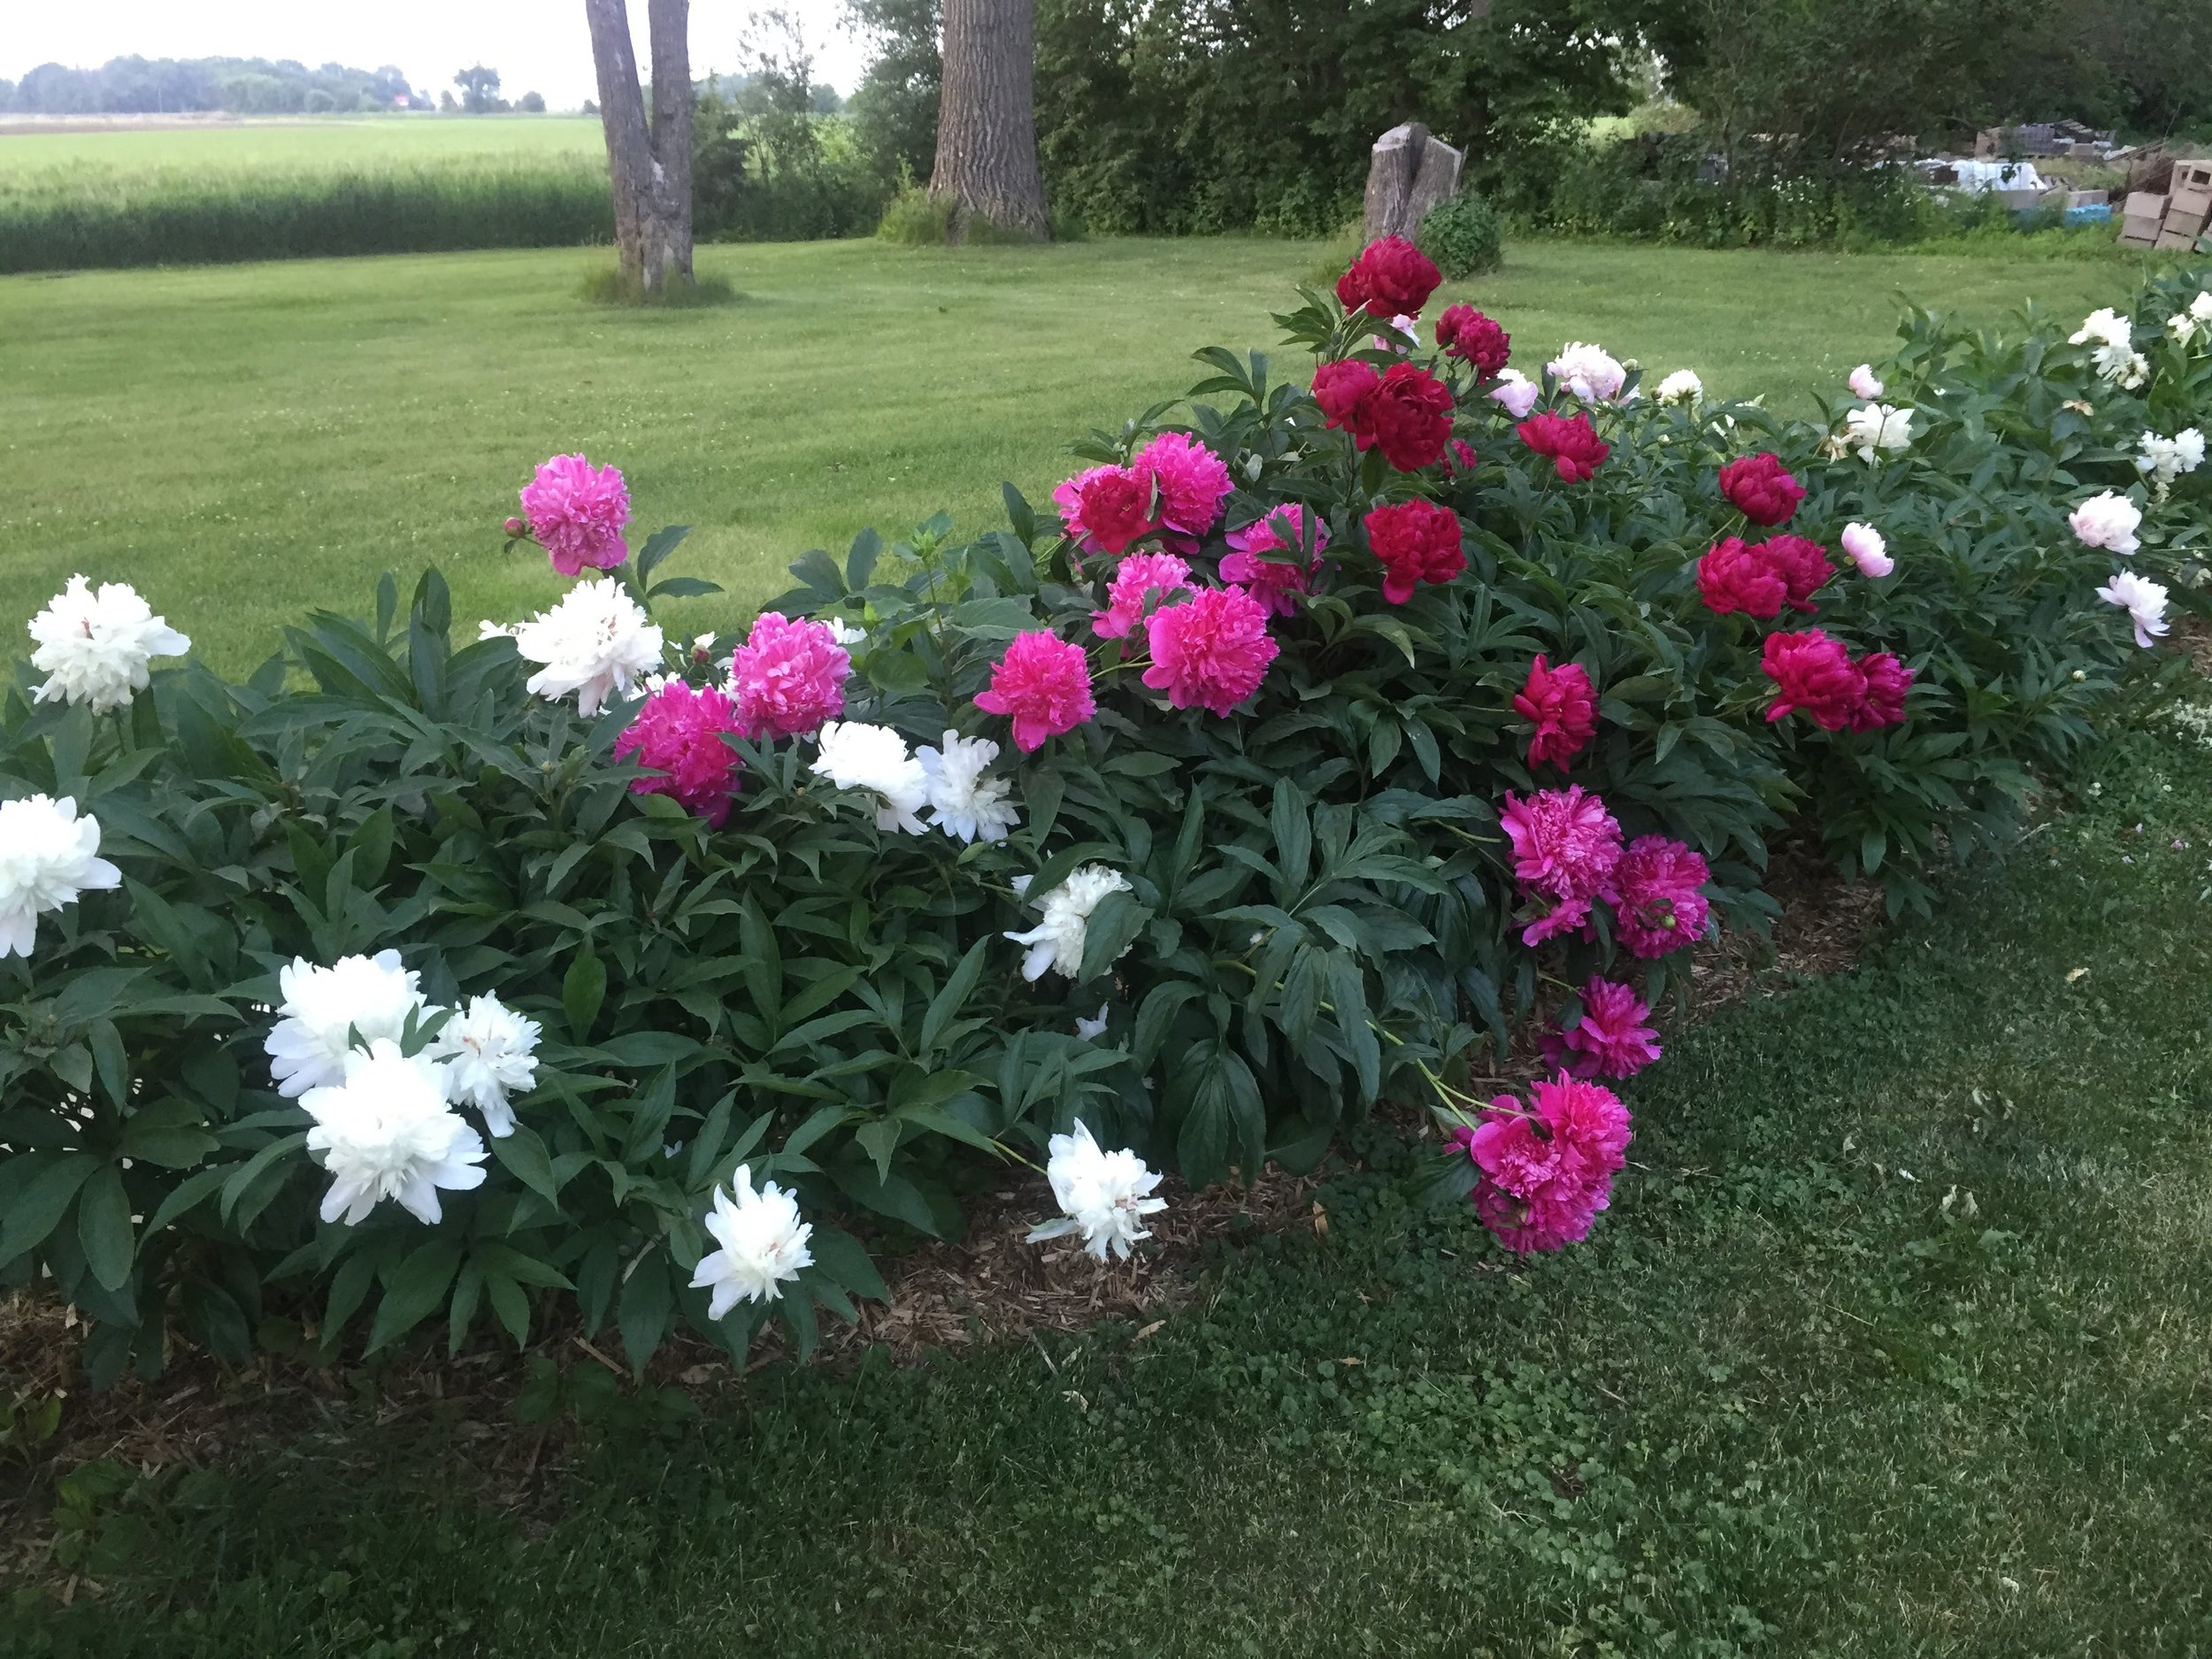 The row of peonies in the backyard of our home at Natural Plus Nursery. They are over 50 years old.